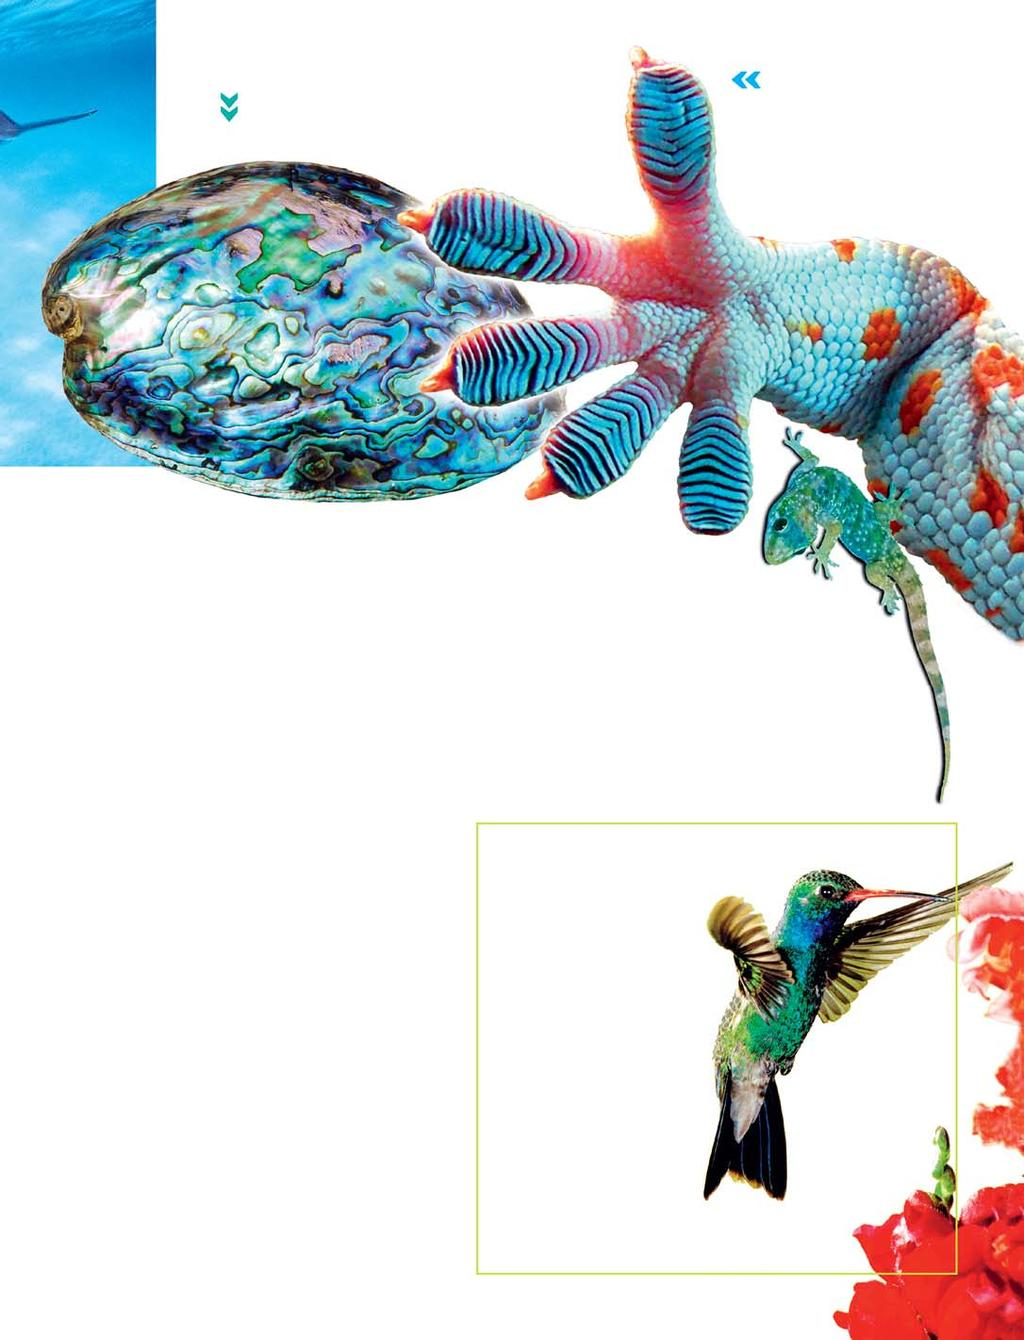 Scientists are researching the shock-absorbing properties of abalone shells Thegeckocanclingtothe smoothest of surfaces by using molecular forces Gecko foot: Fotosearch; hummingbird: Laurie